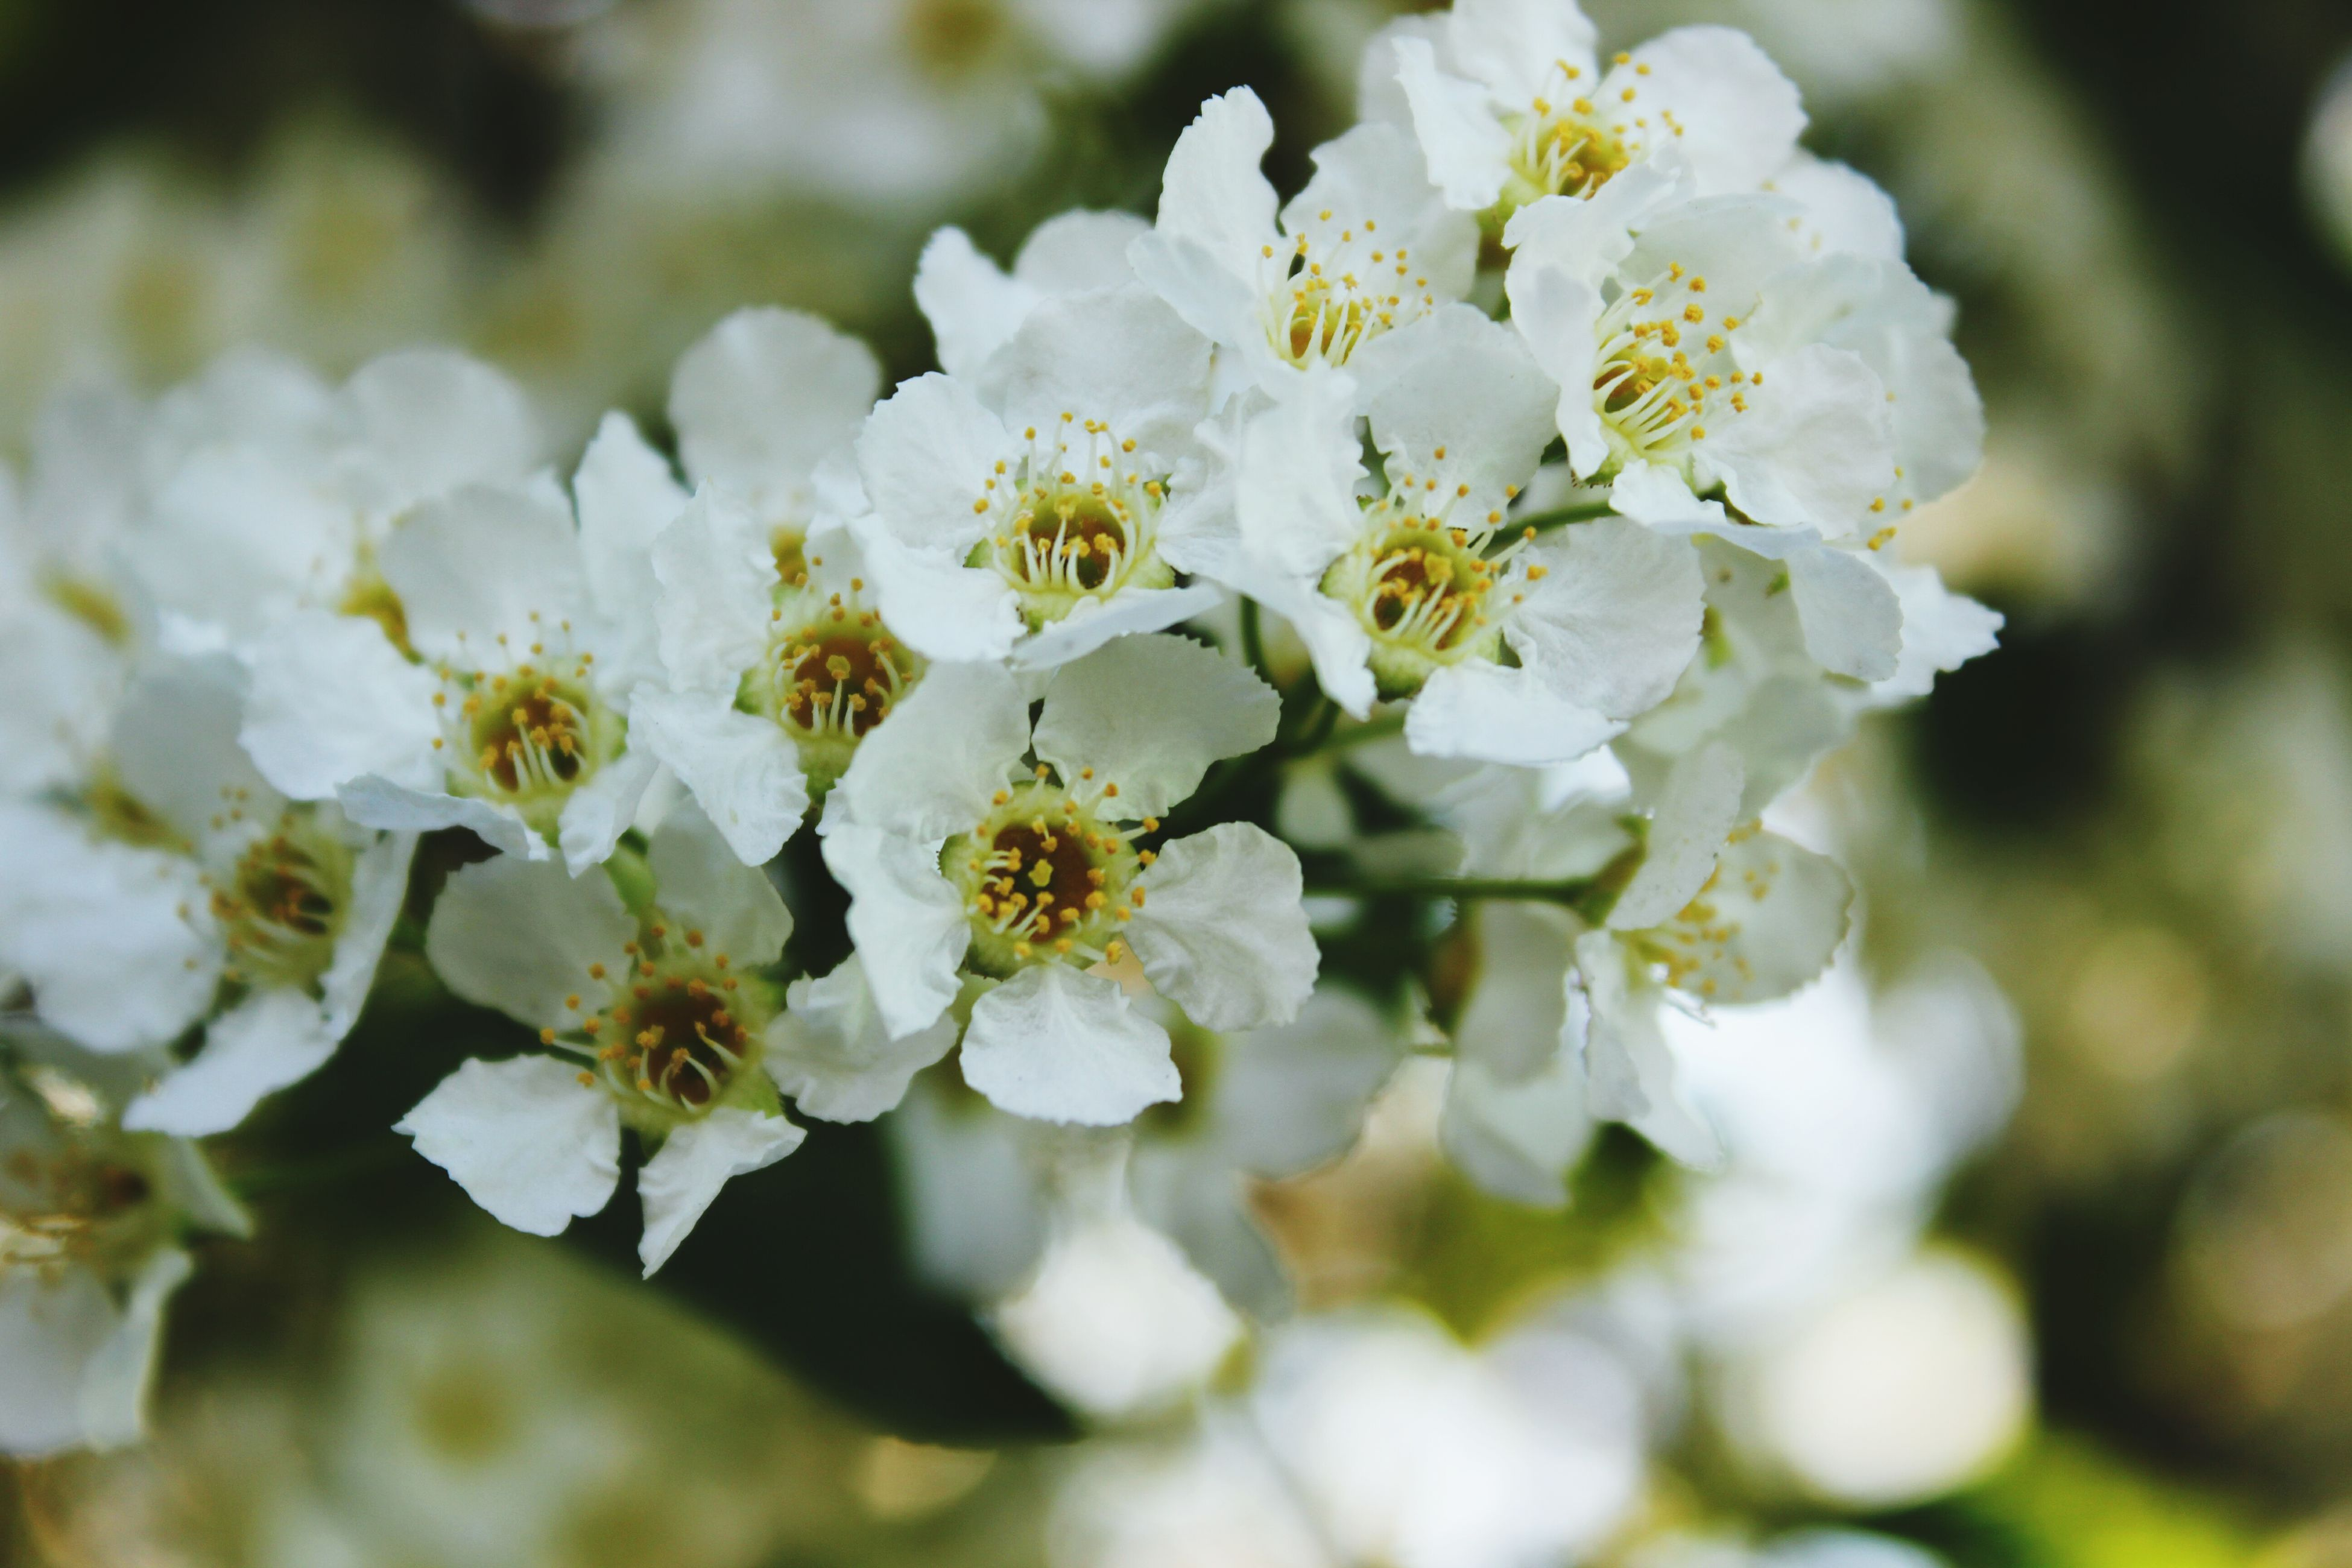 flower, freshness, white color, fragility, growth, petal, focus on foreground, beauty in nature, close-up, flower head, nature, cherry blossom, blooming, blossom, in bloom, tree, white, pollen, stamen, selective focus